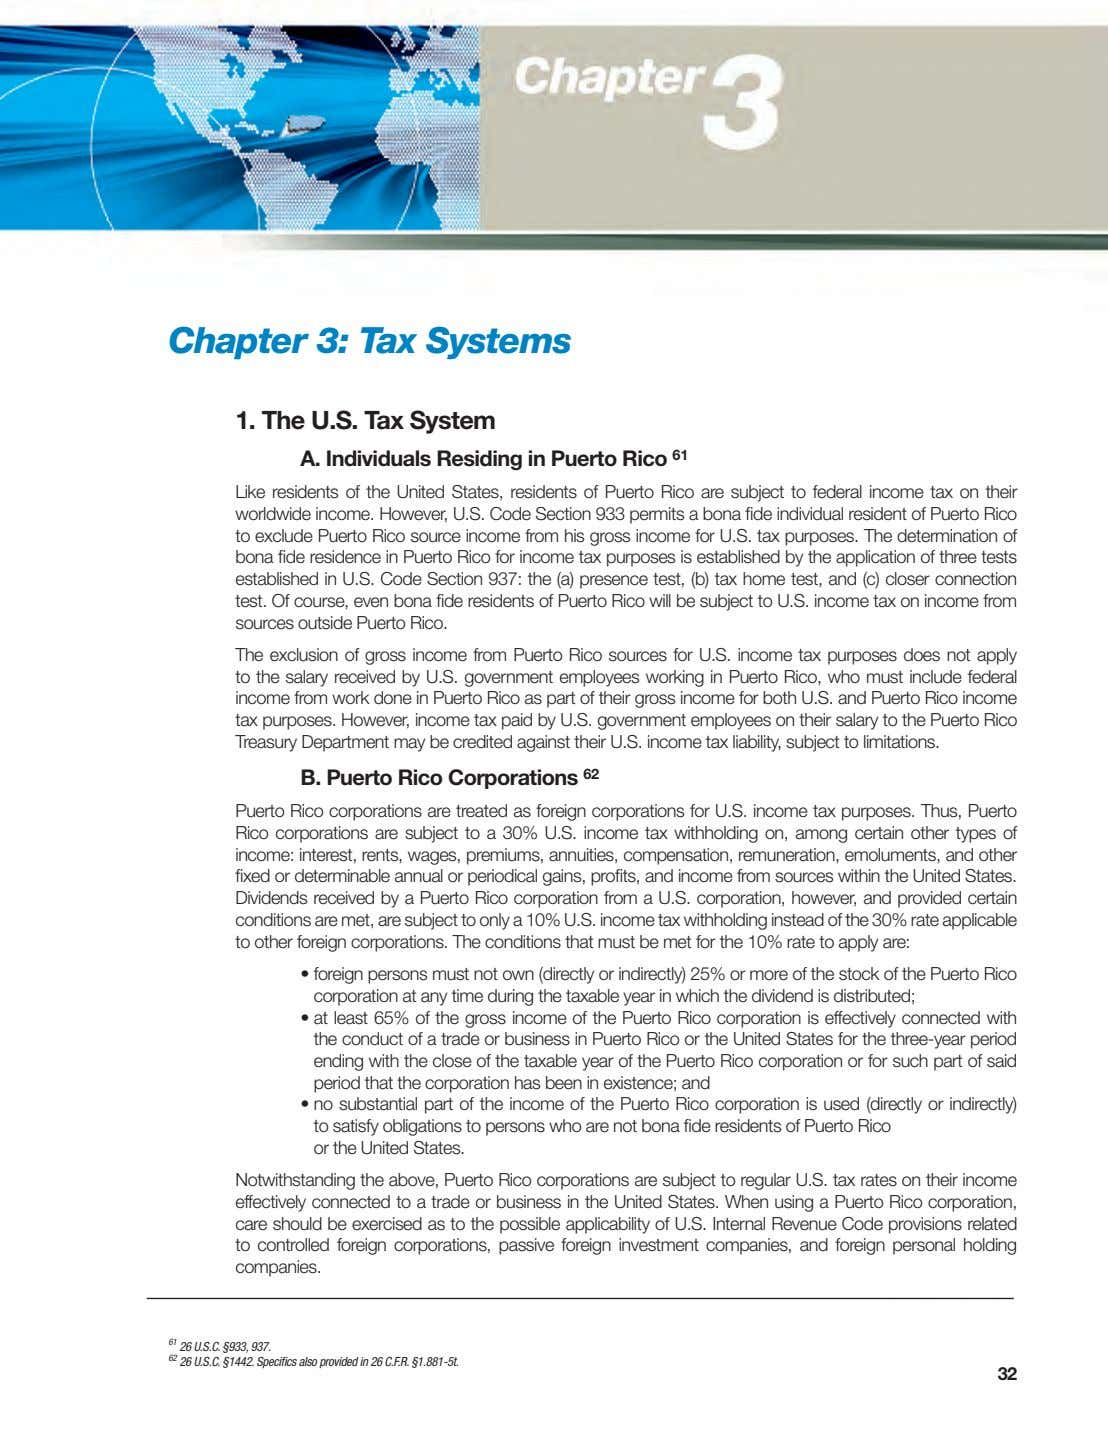 Chapter 3: Tax Systems 1. The U.S. Tax System A. Individuals Residing in Puerto Rico